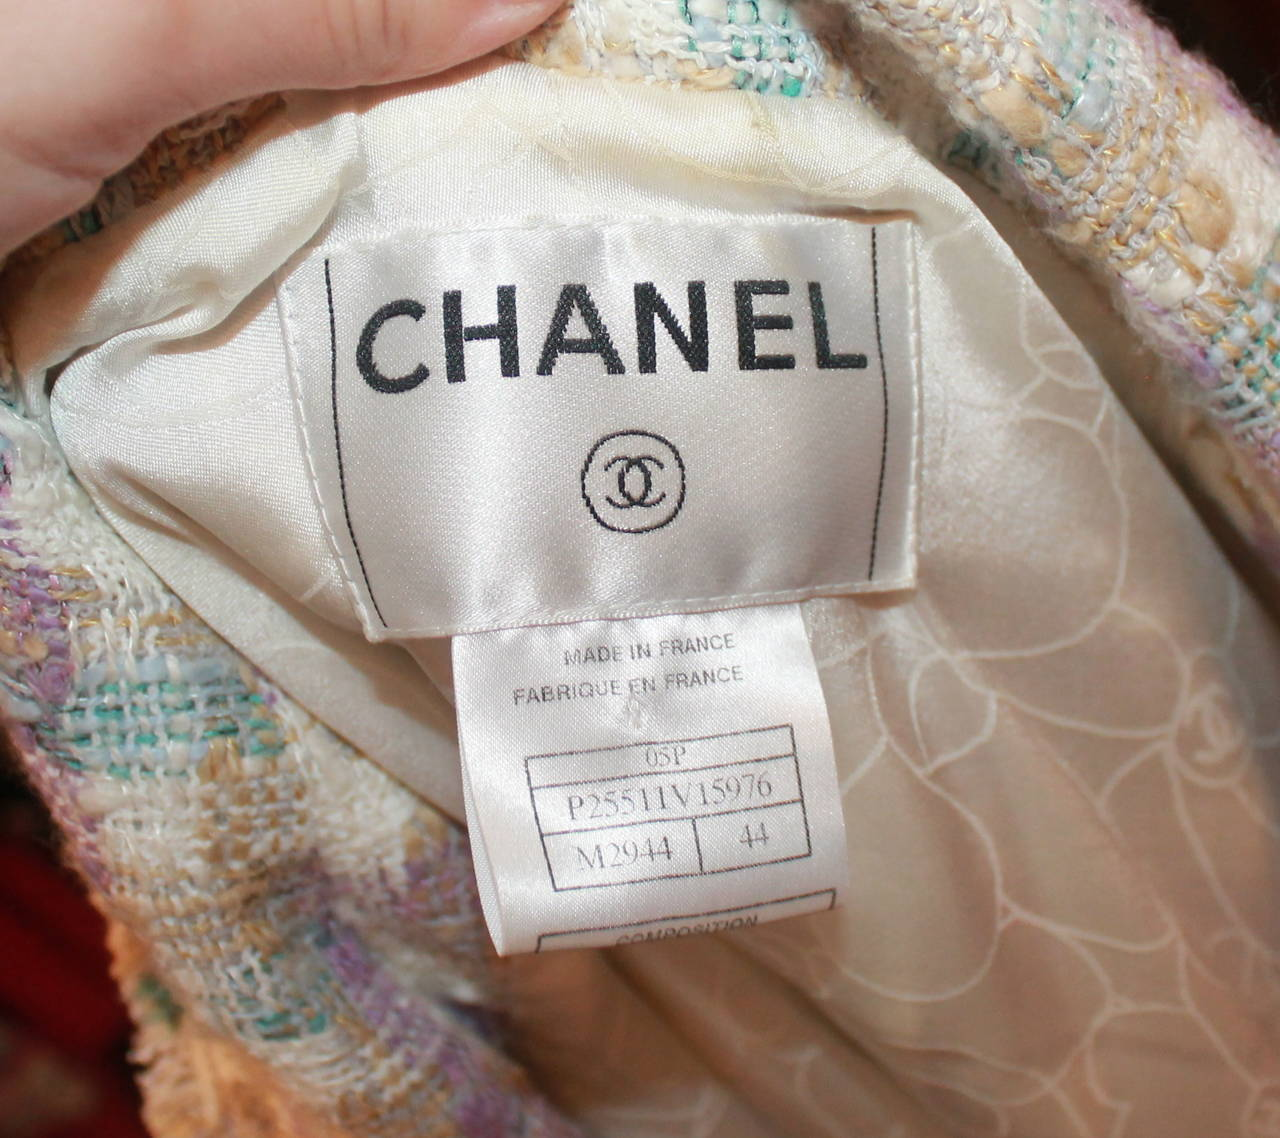 2005 Chanel Multi Color Pastel Tweed Jacket with Mademoiselle Buttons 7